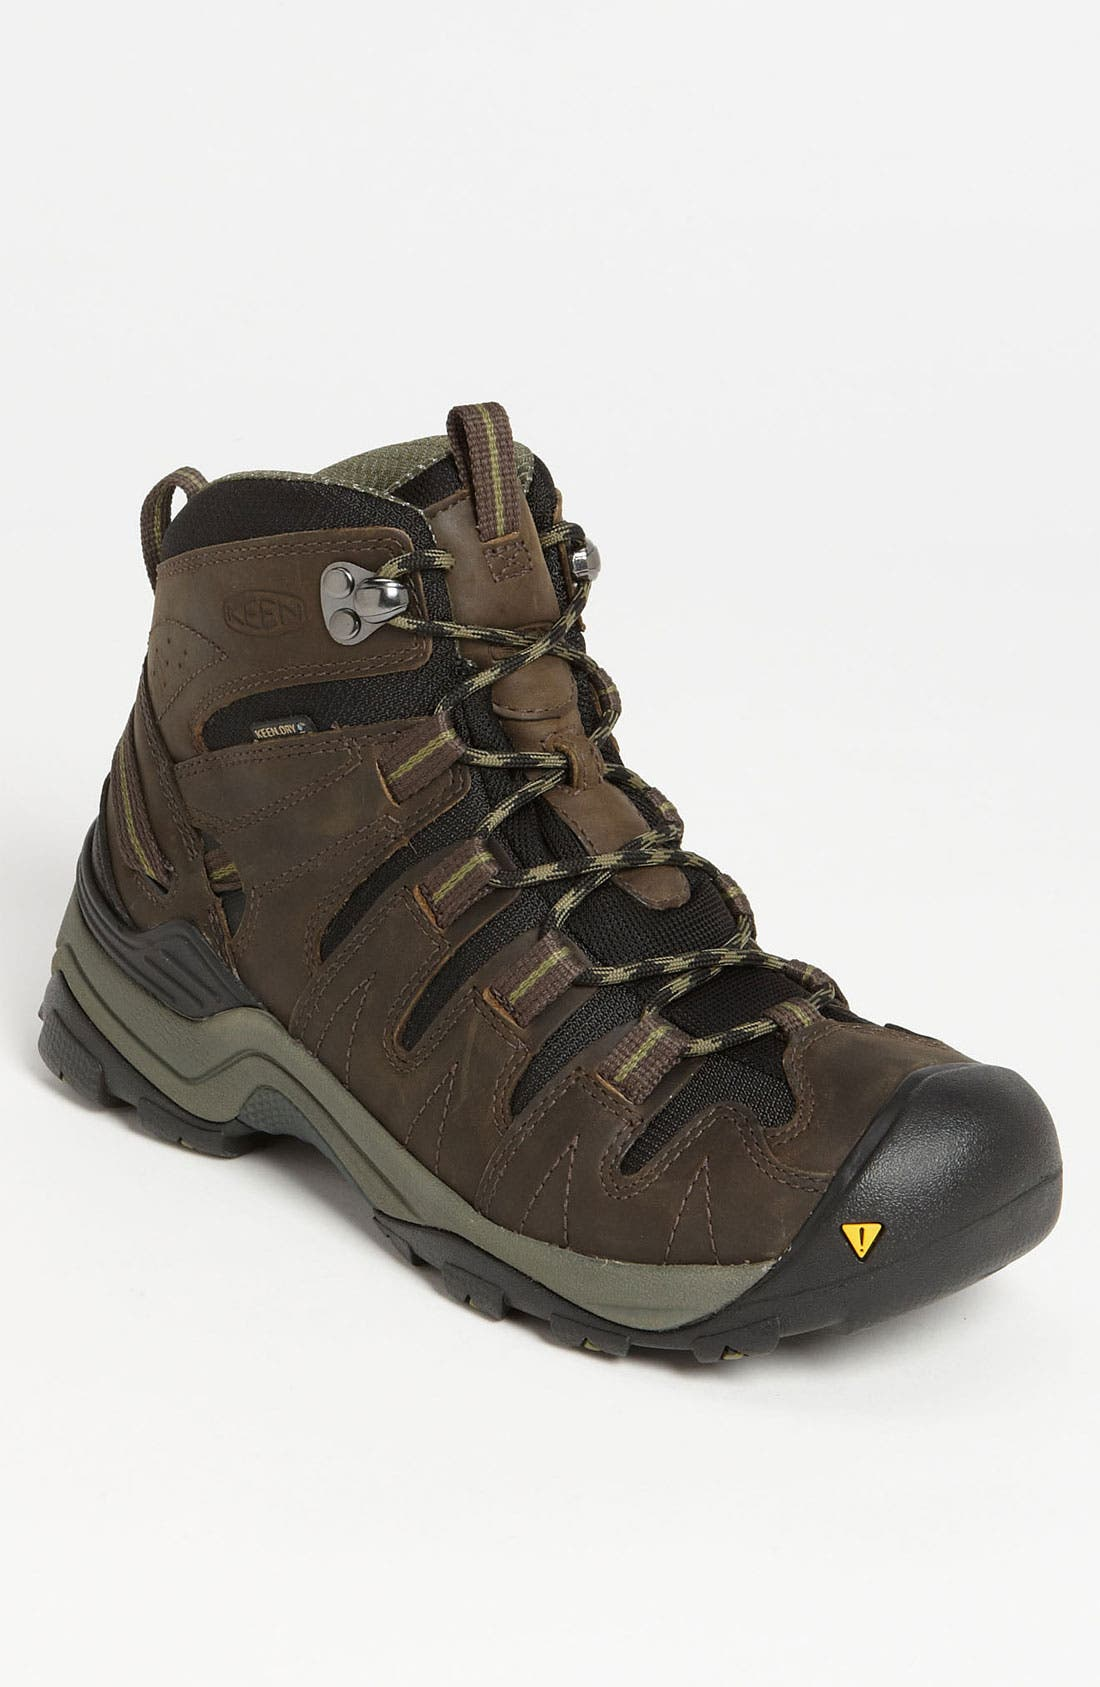 Main Image - Keen 'Gypsum' Hiking Boot (Men) (Online Only)